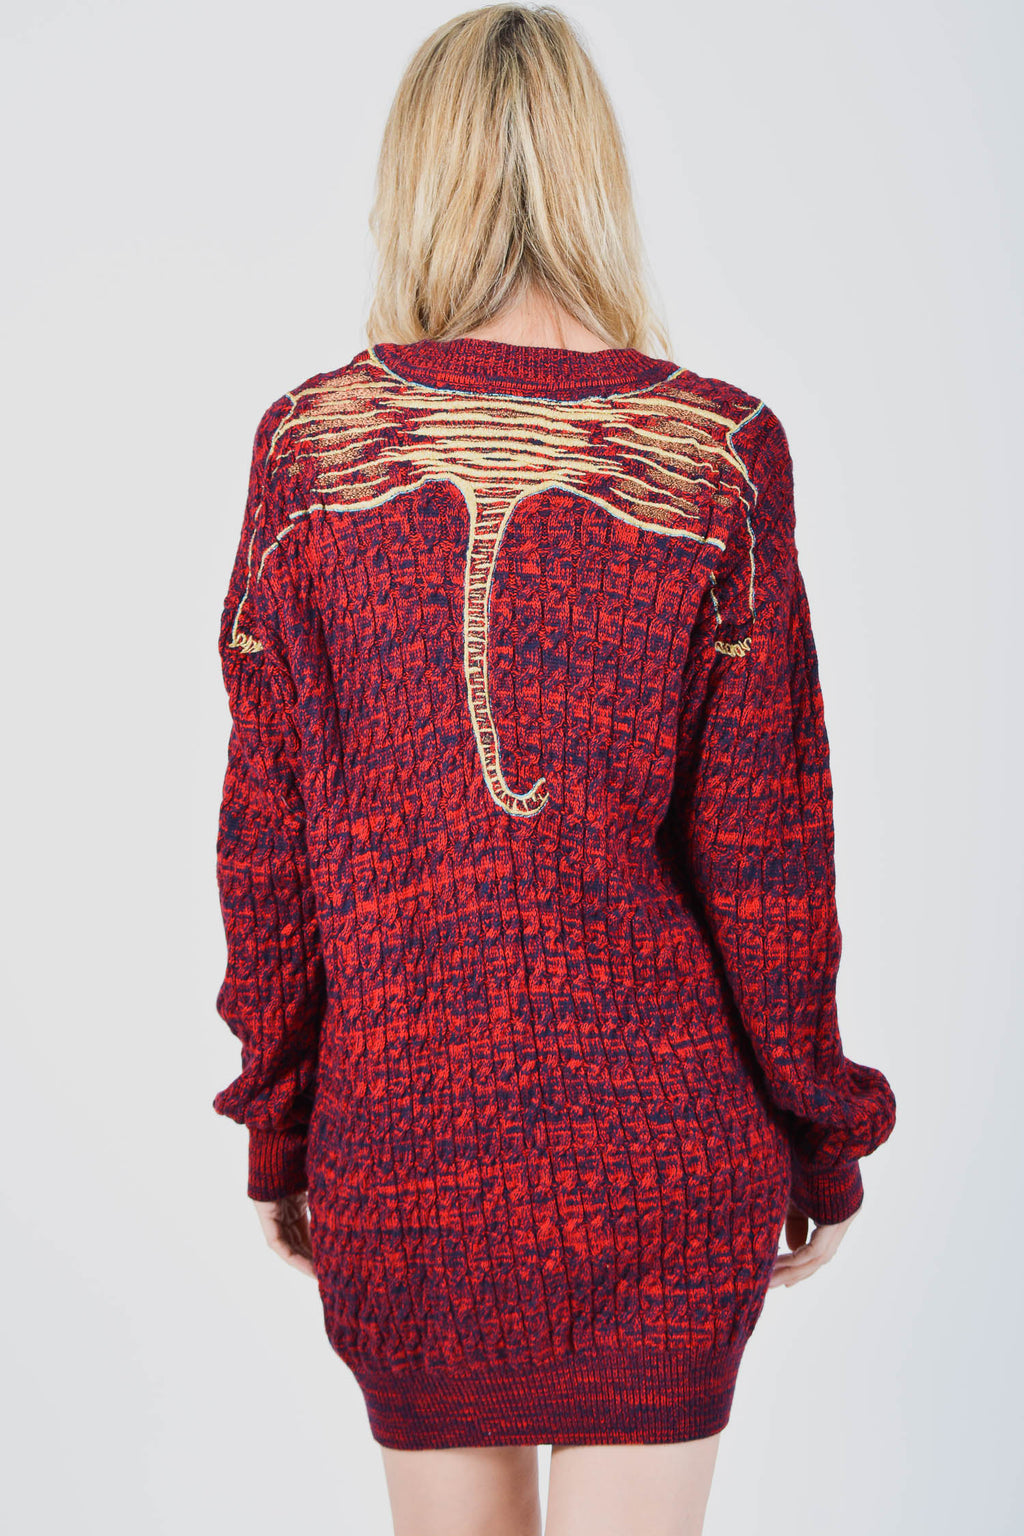 5195ba2f50f Kenzo Red Tiger Cable Knit Sweater Dress Size L – Mine   Yours ...